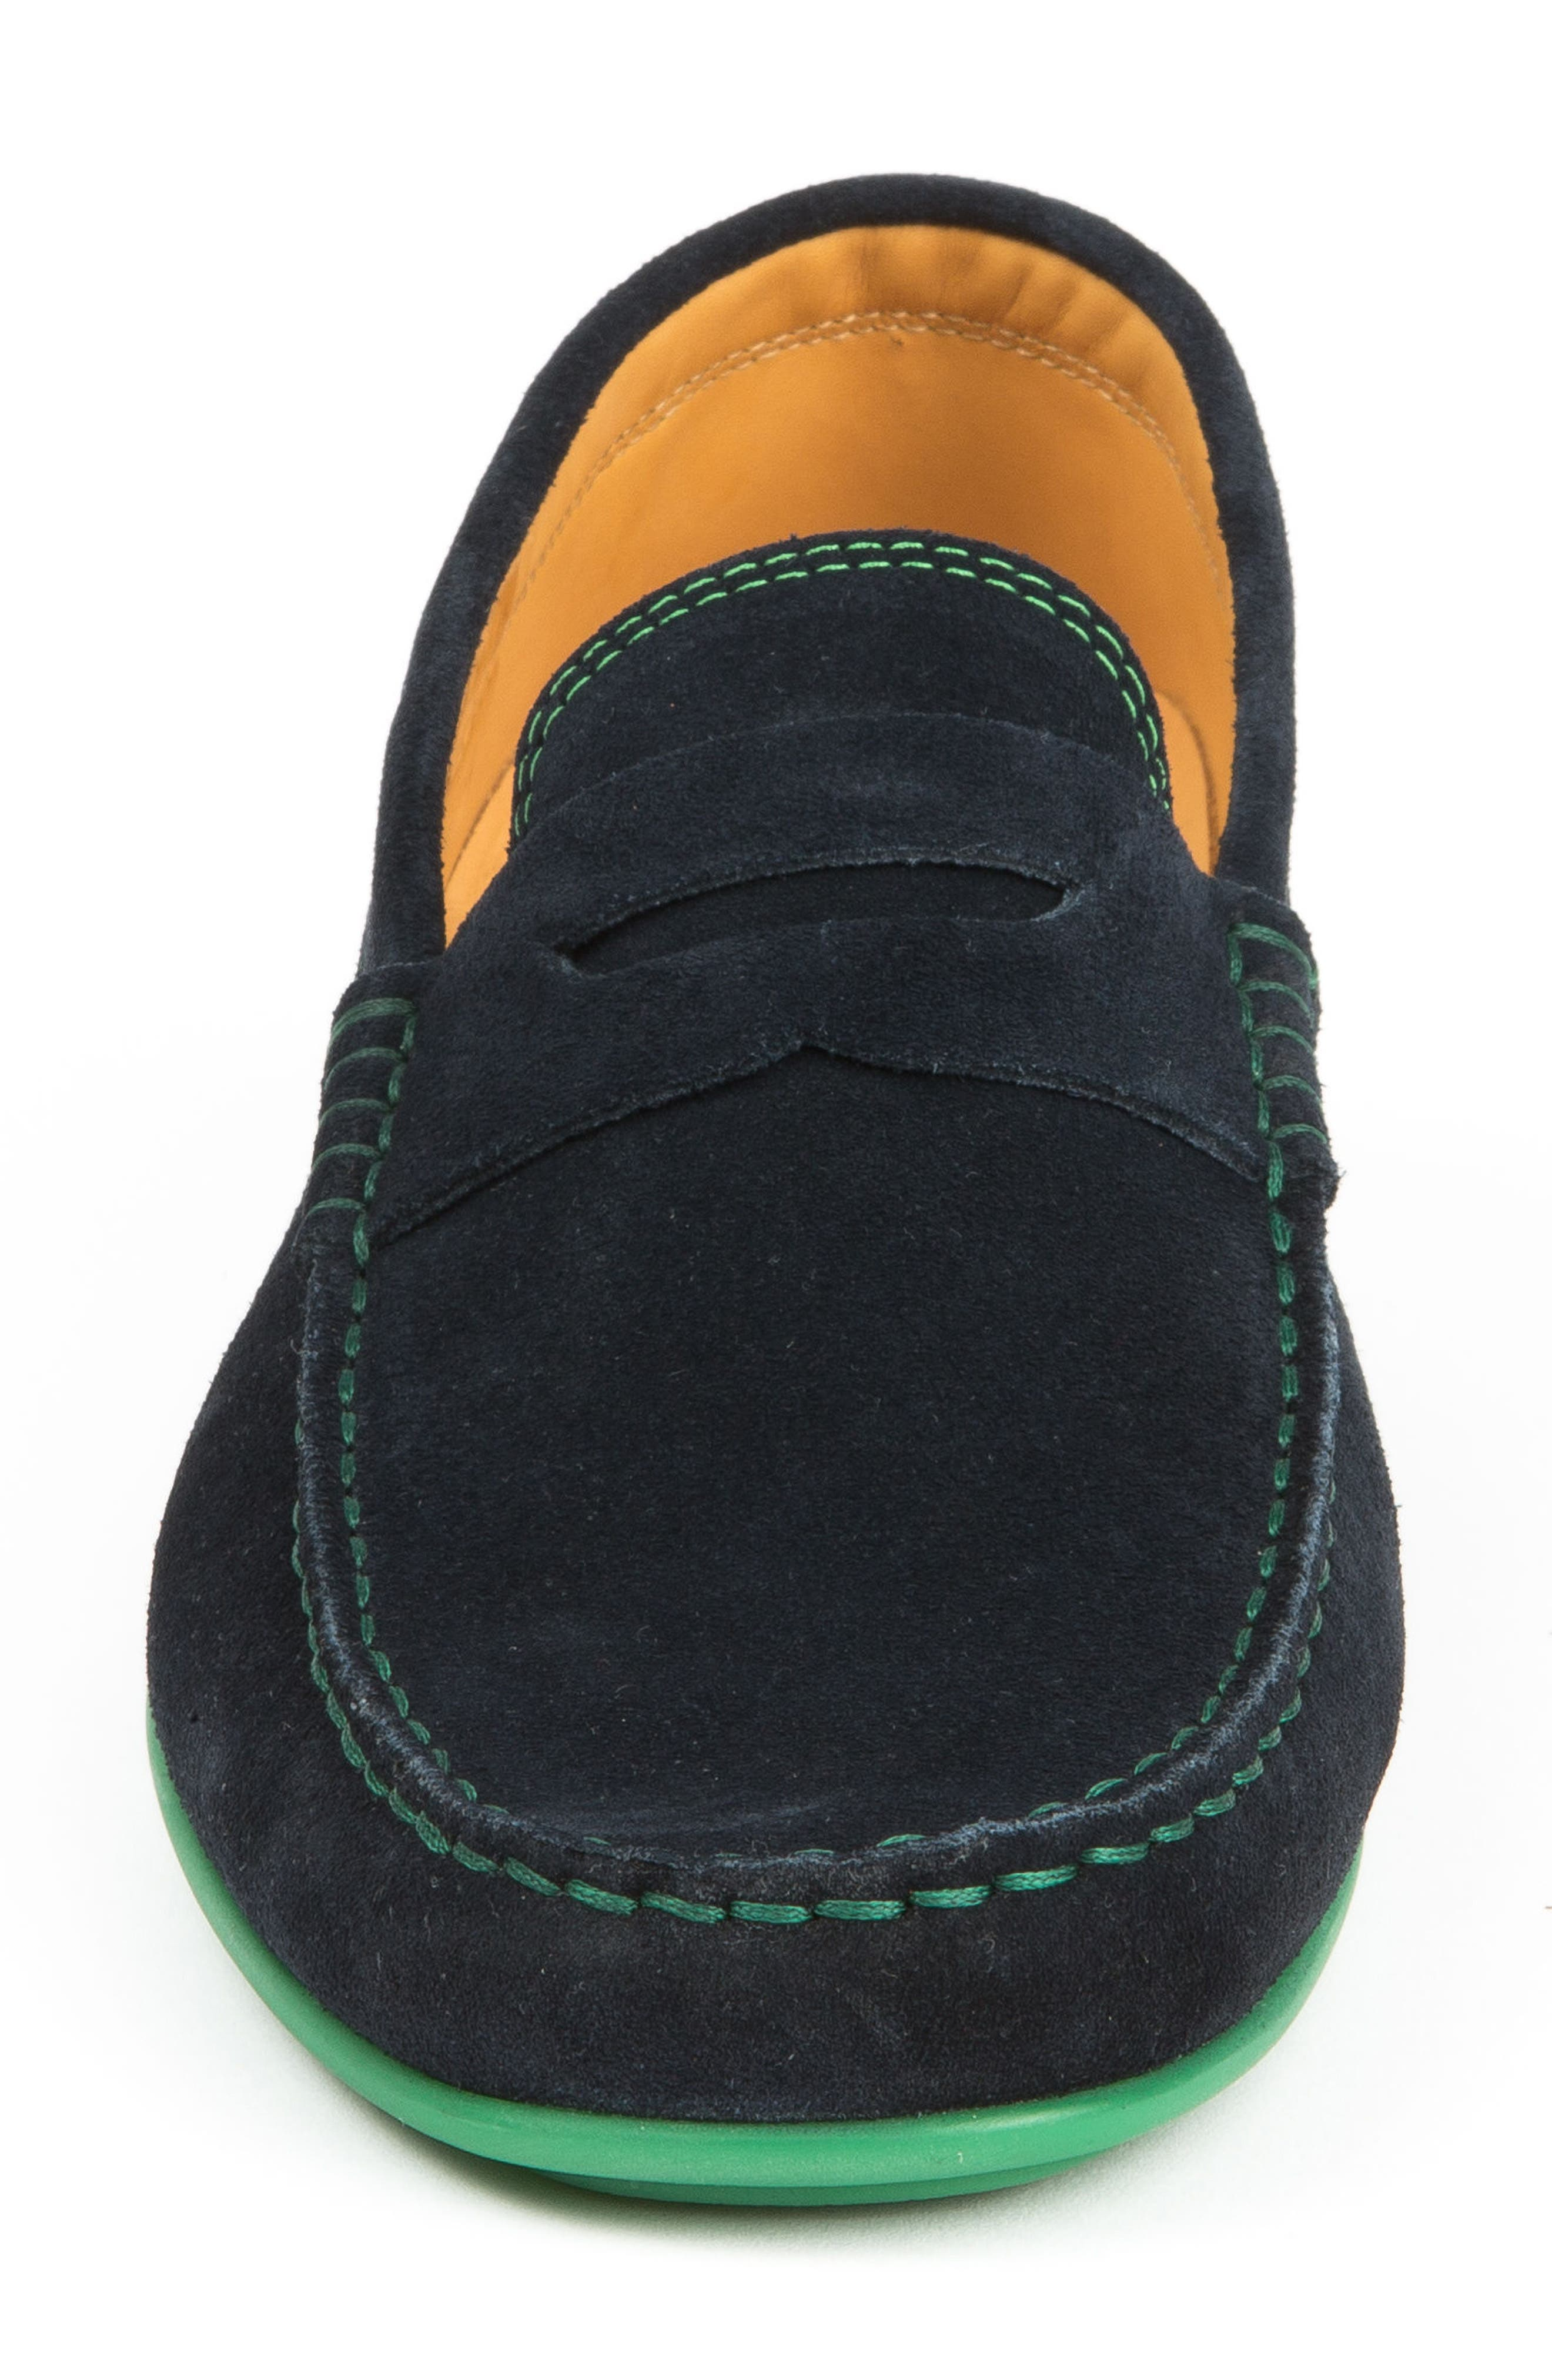 'Chathams' Penny Loafer,                             Alternate thumbnail 4, color,                             NAVY SUEDE/ GREEN